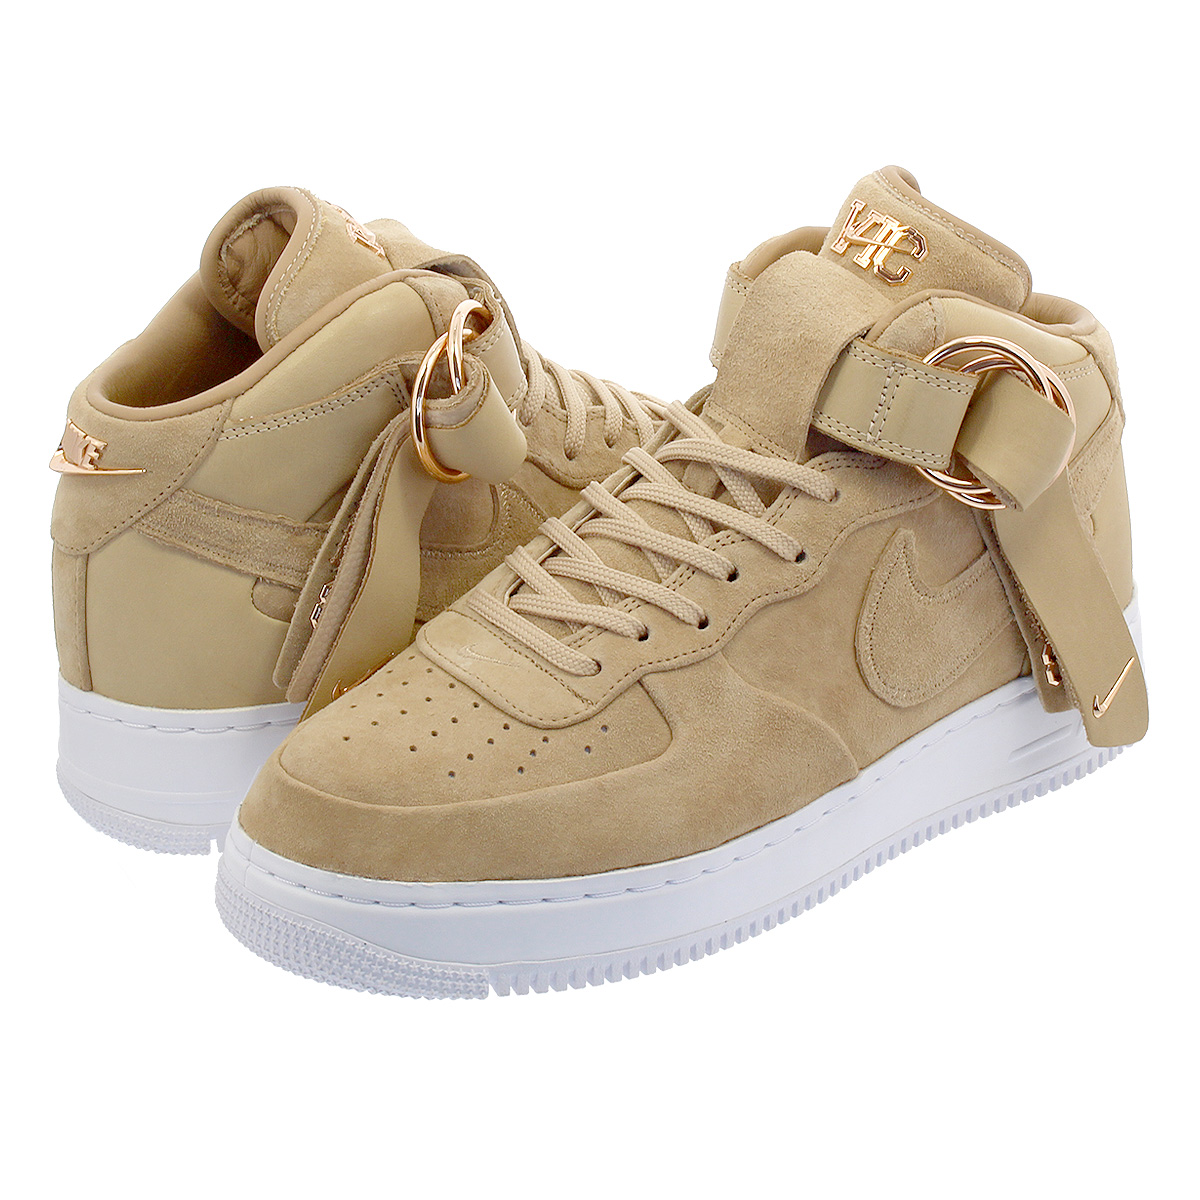 7f4491314ec1c 楽天市場】NIKE AIR FORCE 1 MID CMFT × VICTOR CRUZ ナイキ × ビクター ...